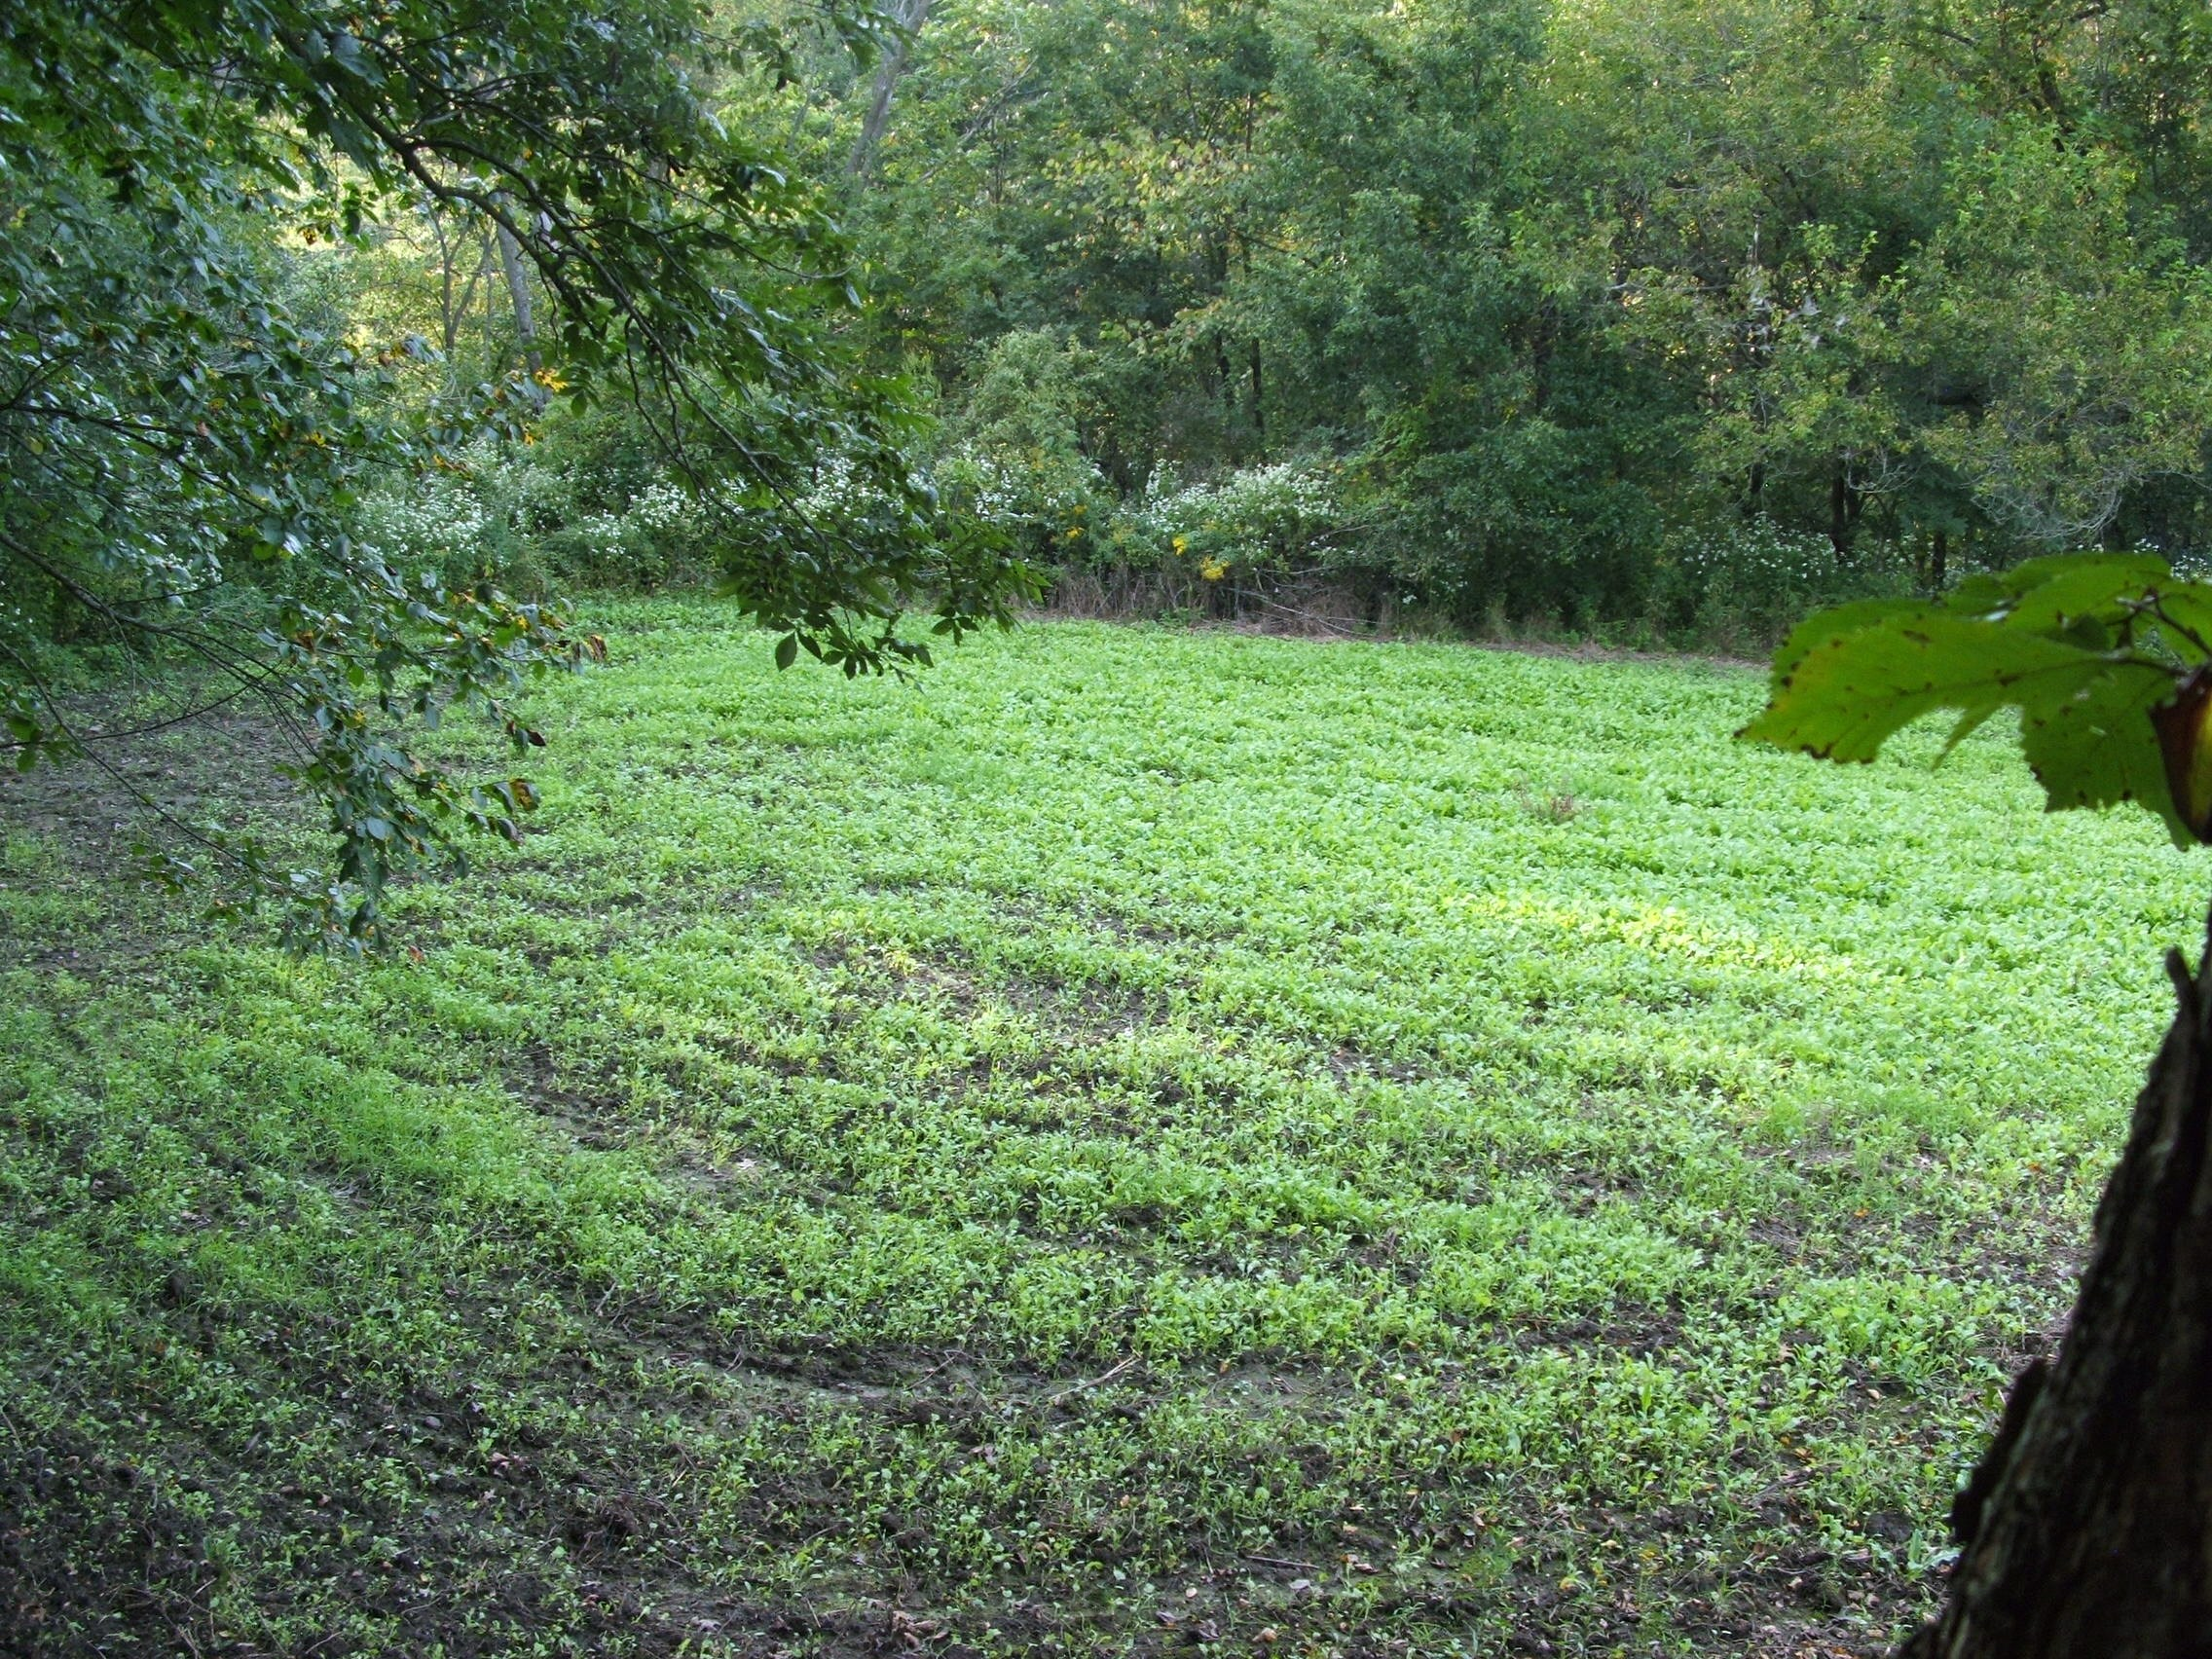 Very small food plots can add just that extra touch to make your set irresistible to a traveling buck. Small plots planted in greens work best.